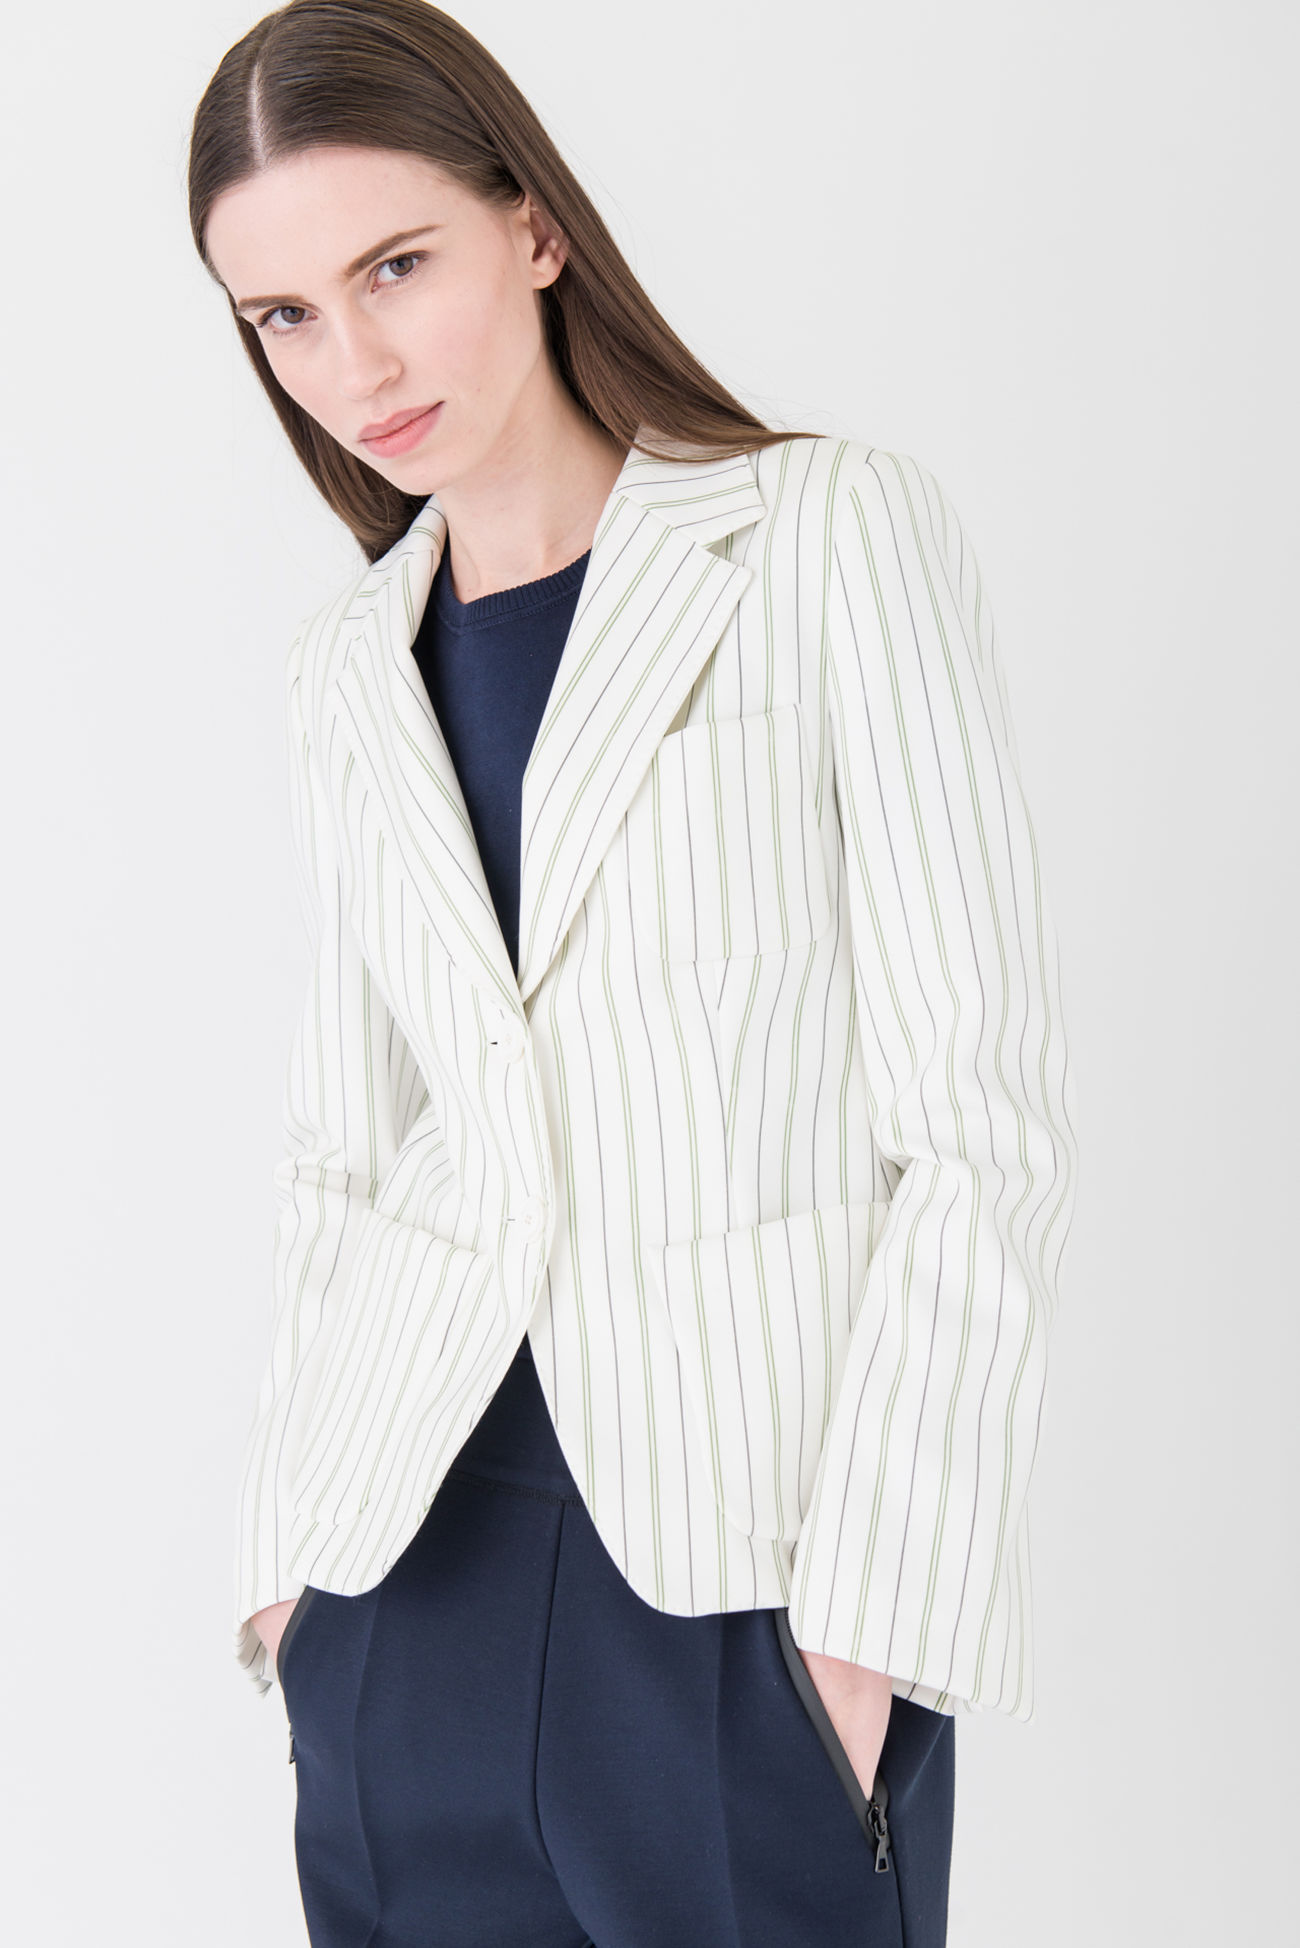 Extravagant, striped blazer made of Dri-FIT jersey